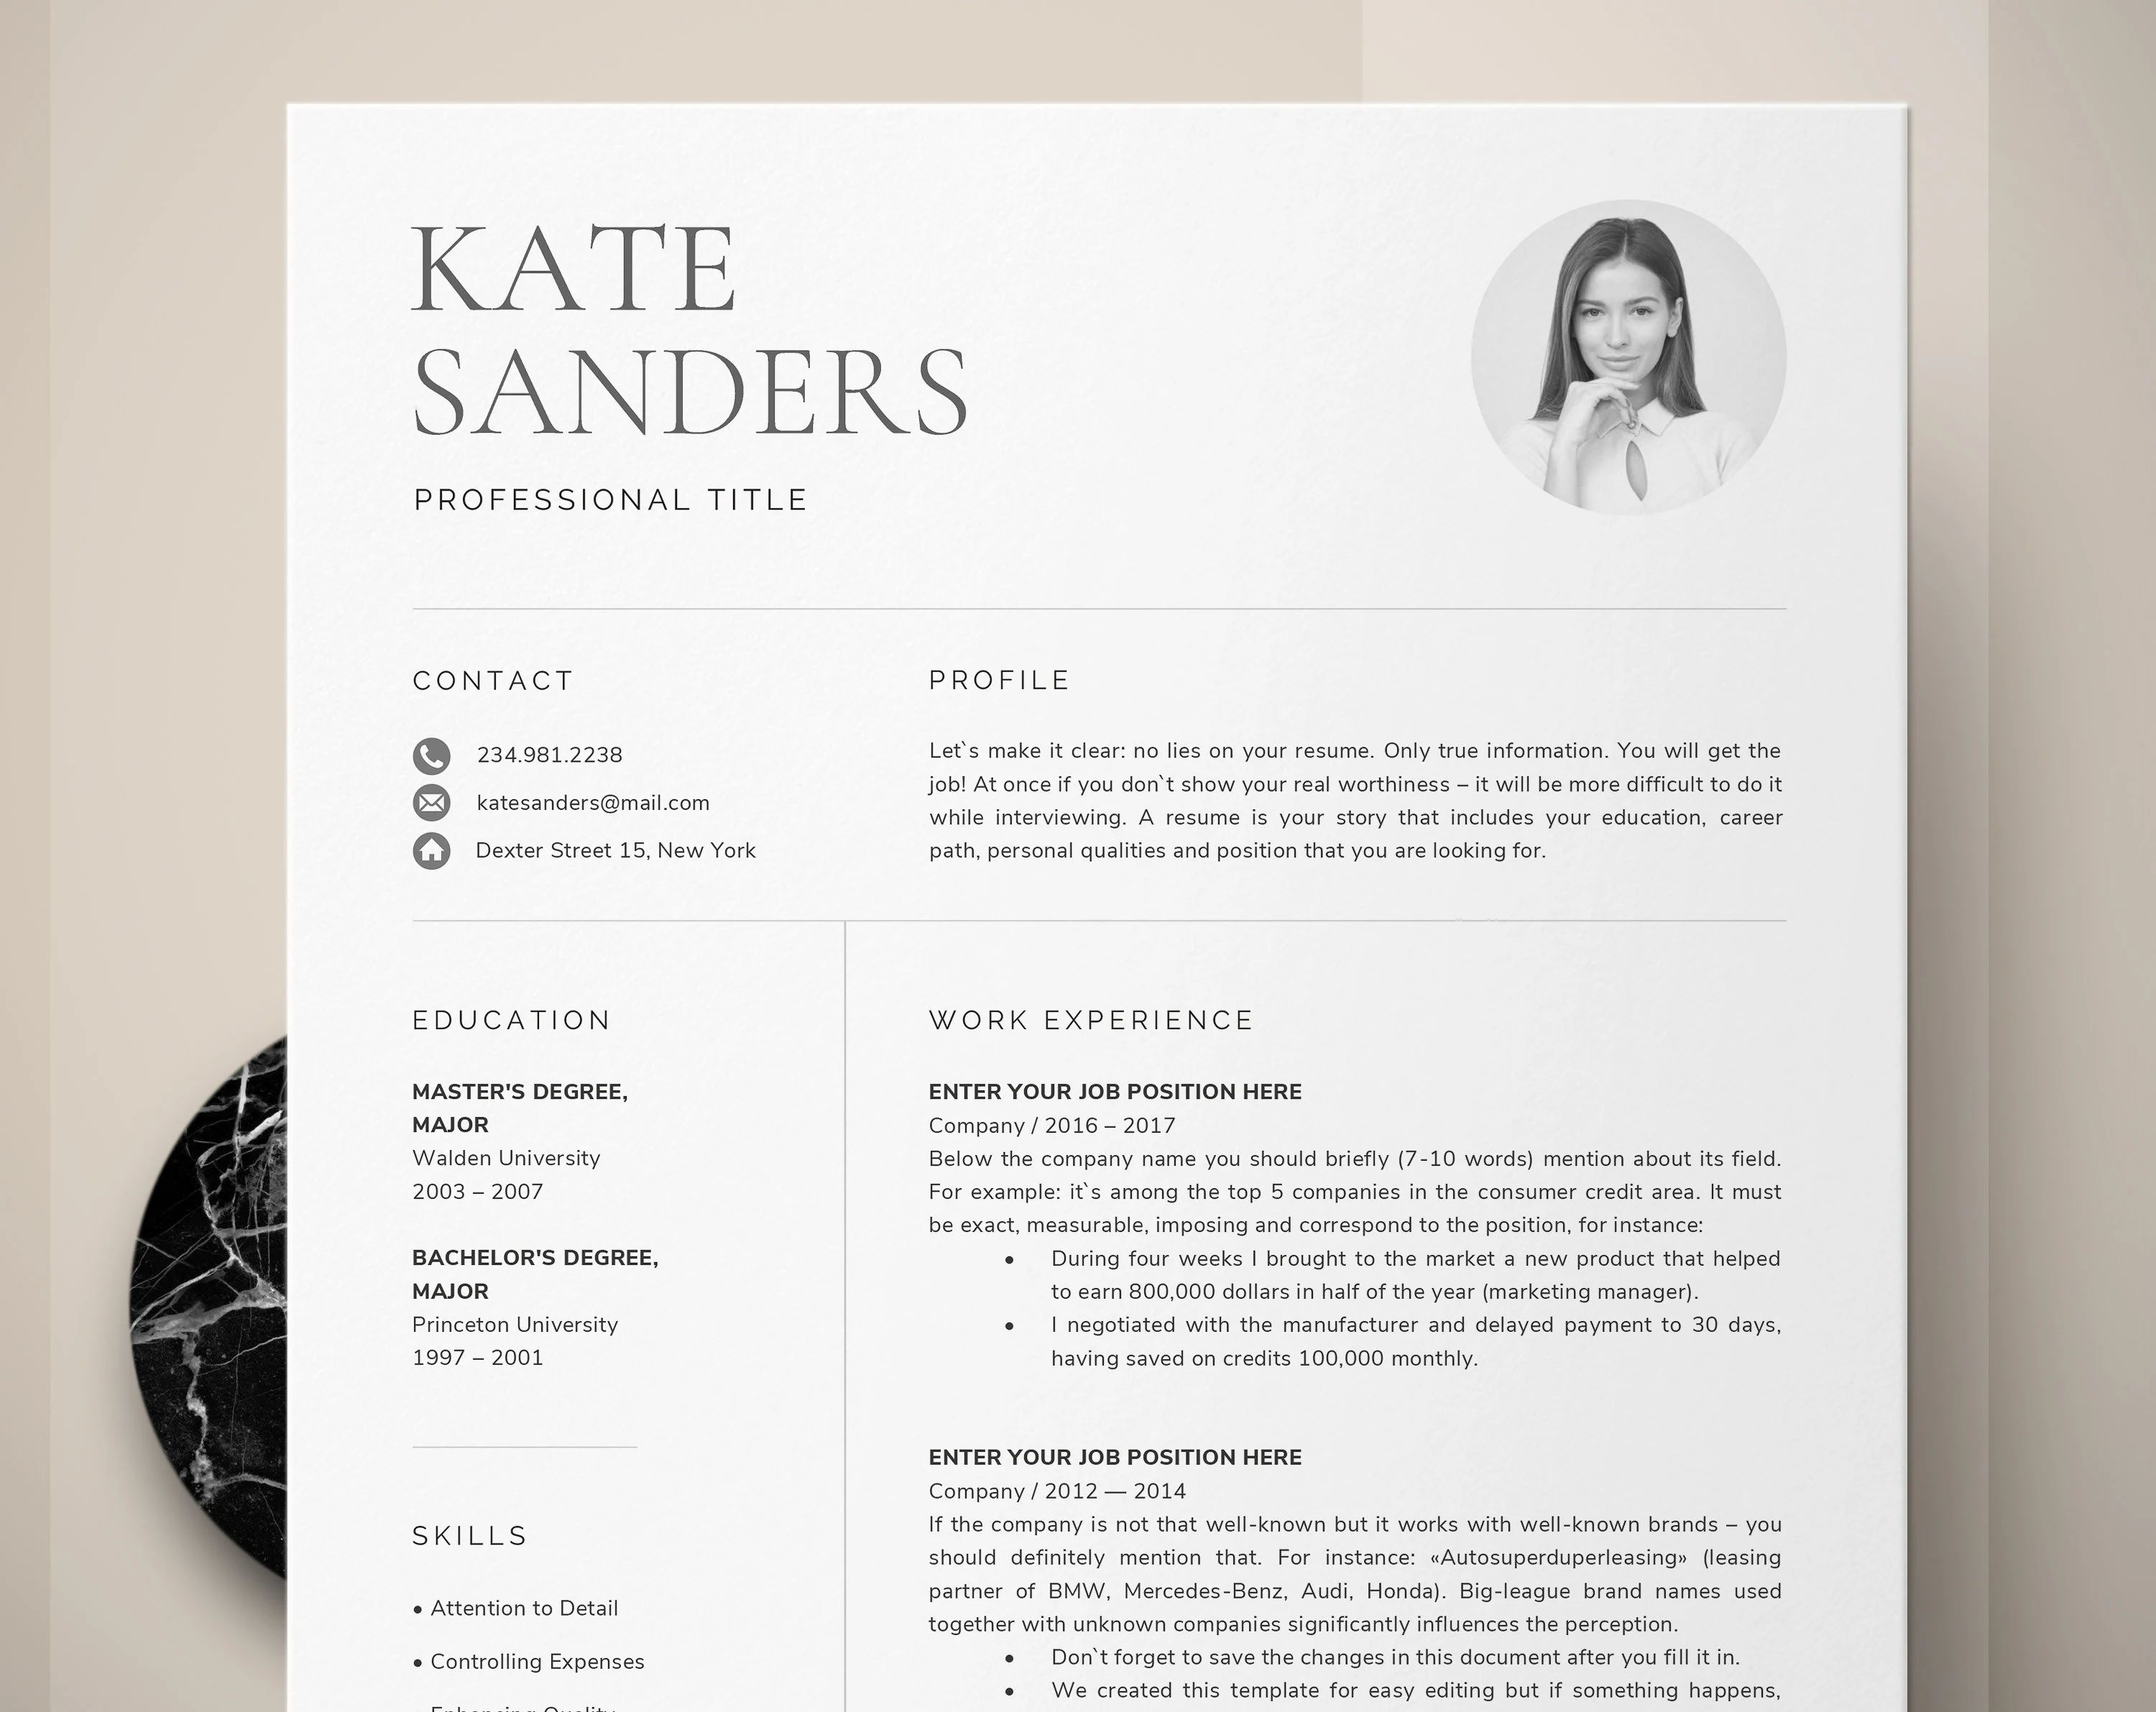 cv marketing design